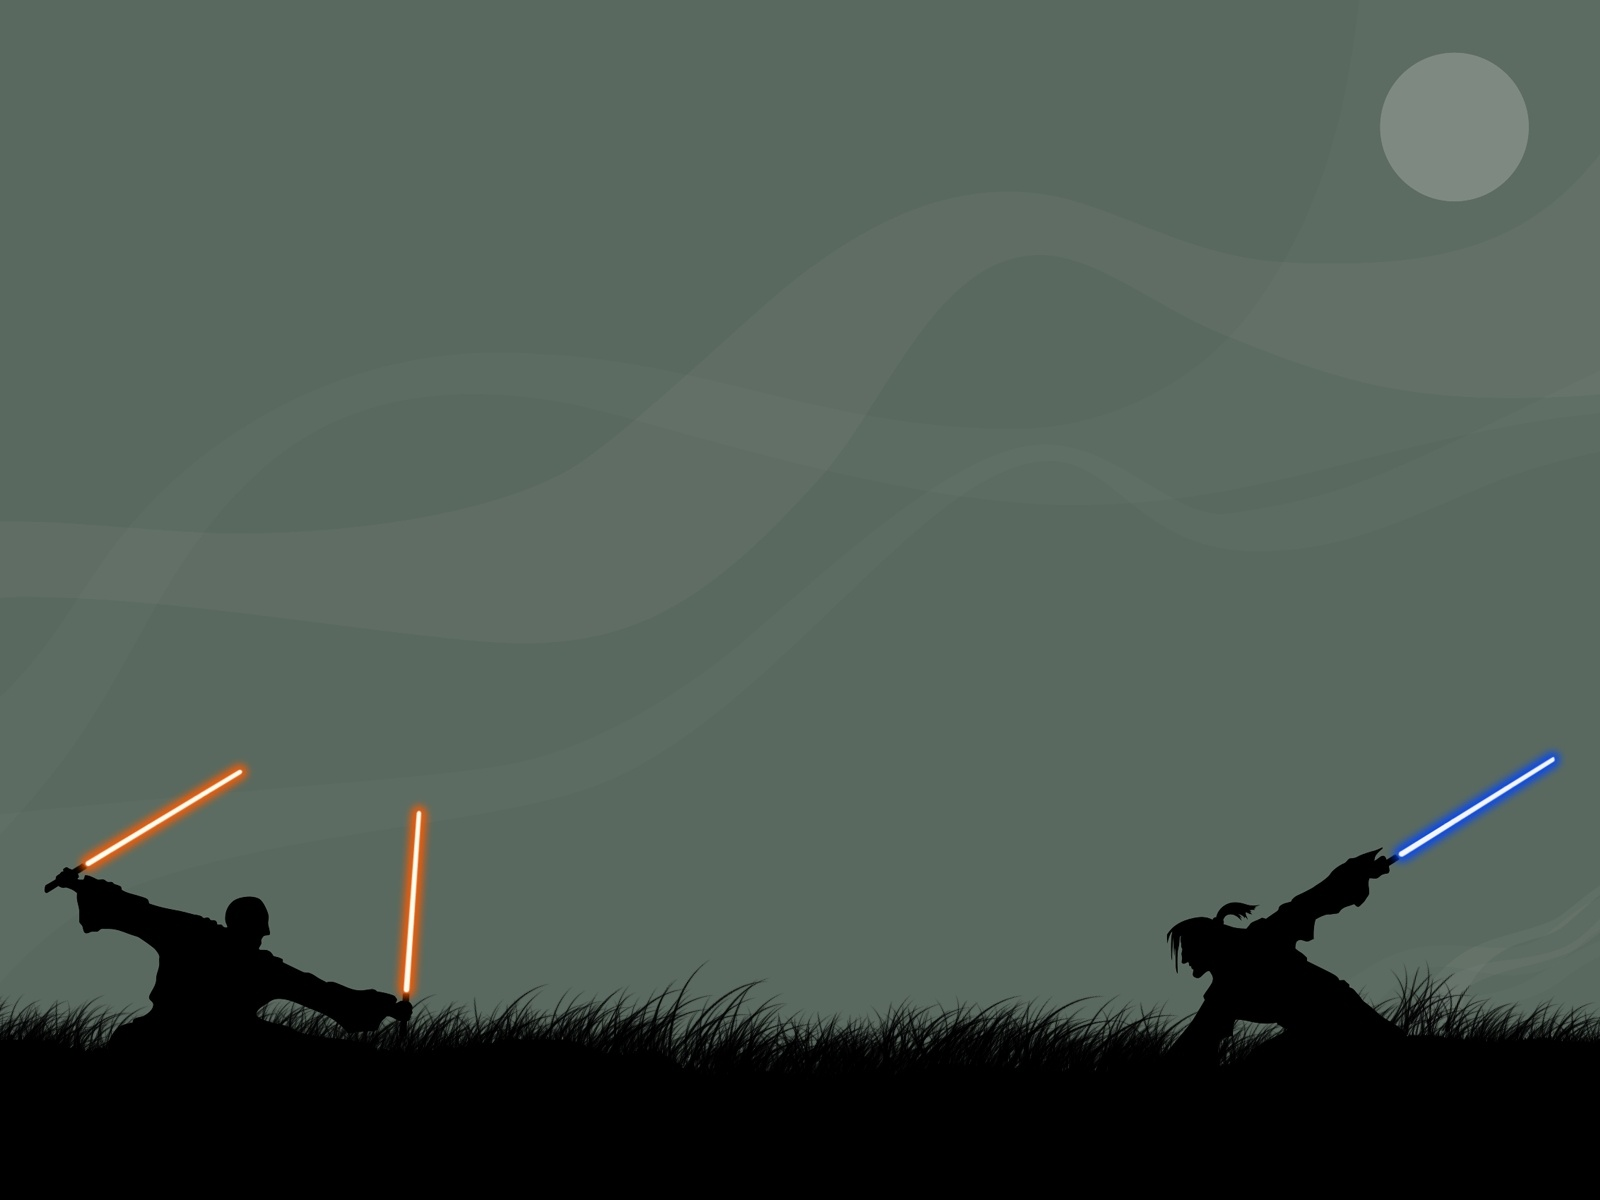 Description: The Wallpaper above is Sith vs Yedi Art Wallpaper in Resolution 1600x1200. Choose your Resolution and Download Sith vs Yedi Art Wallpaper